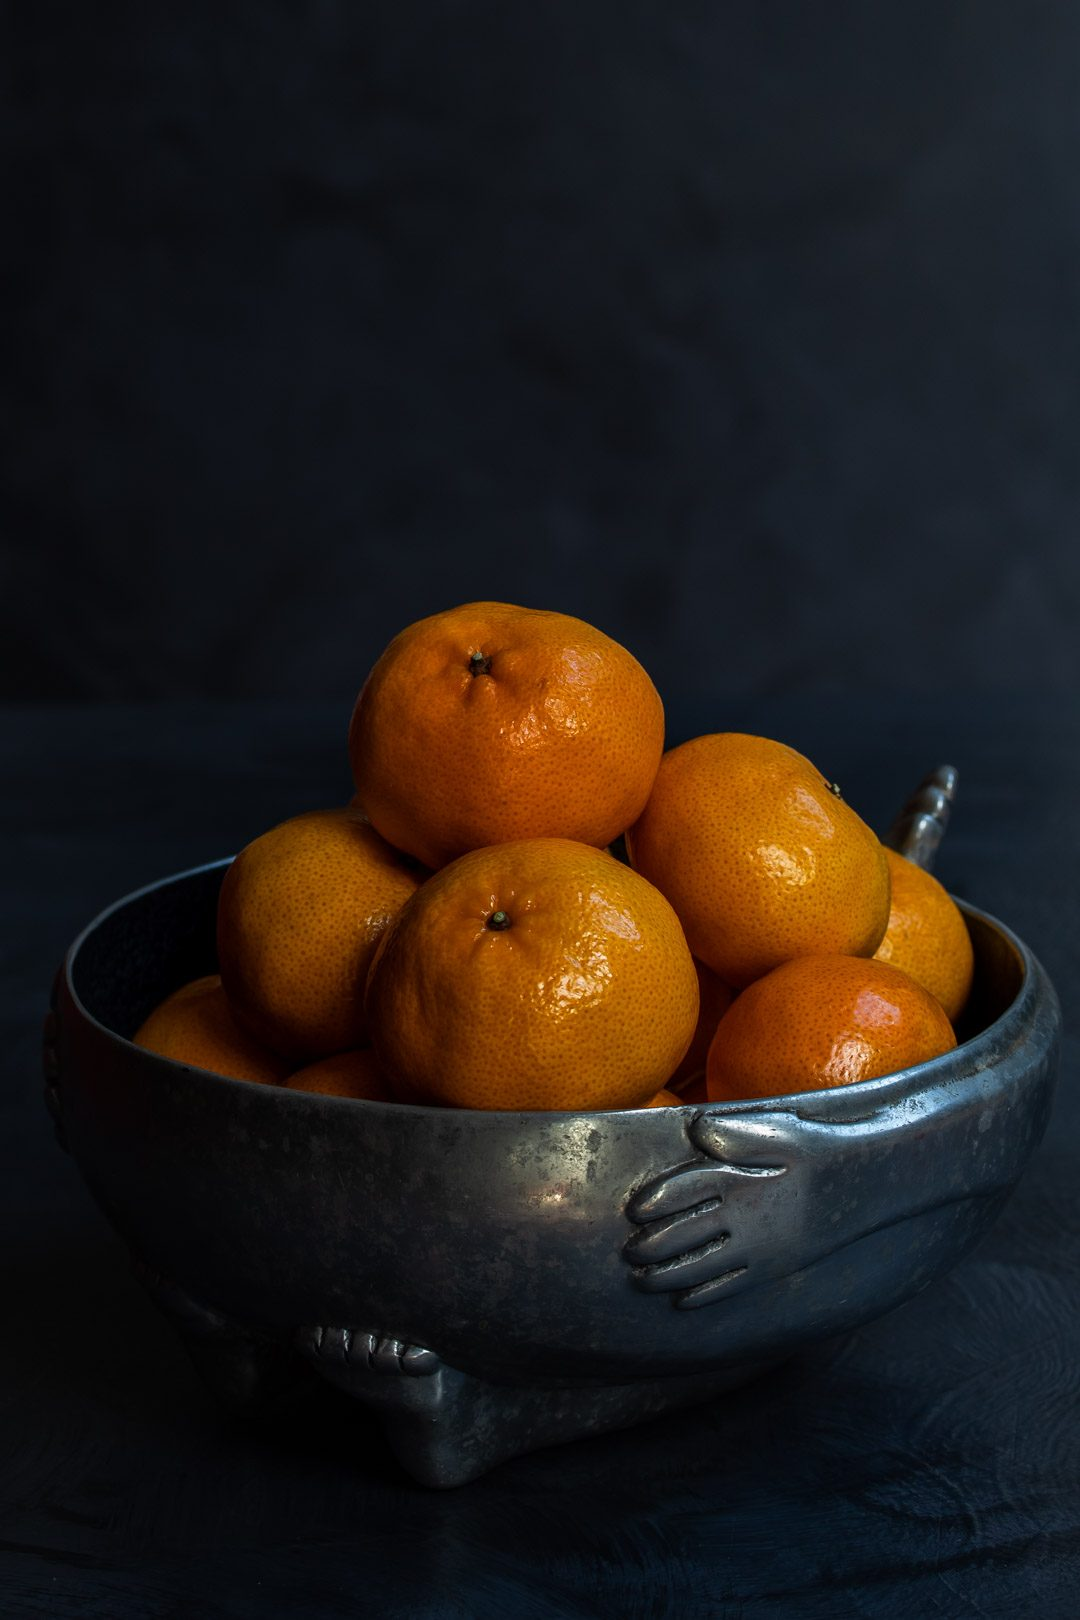 Making Mandarin tarragon shrub syrup drinking vinegar with mandarins in metal bowl